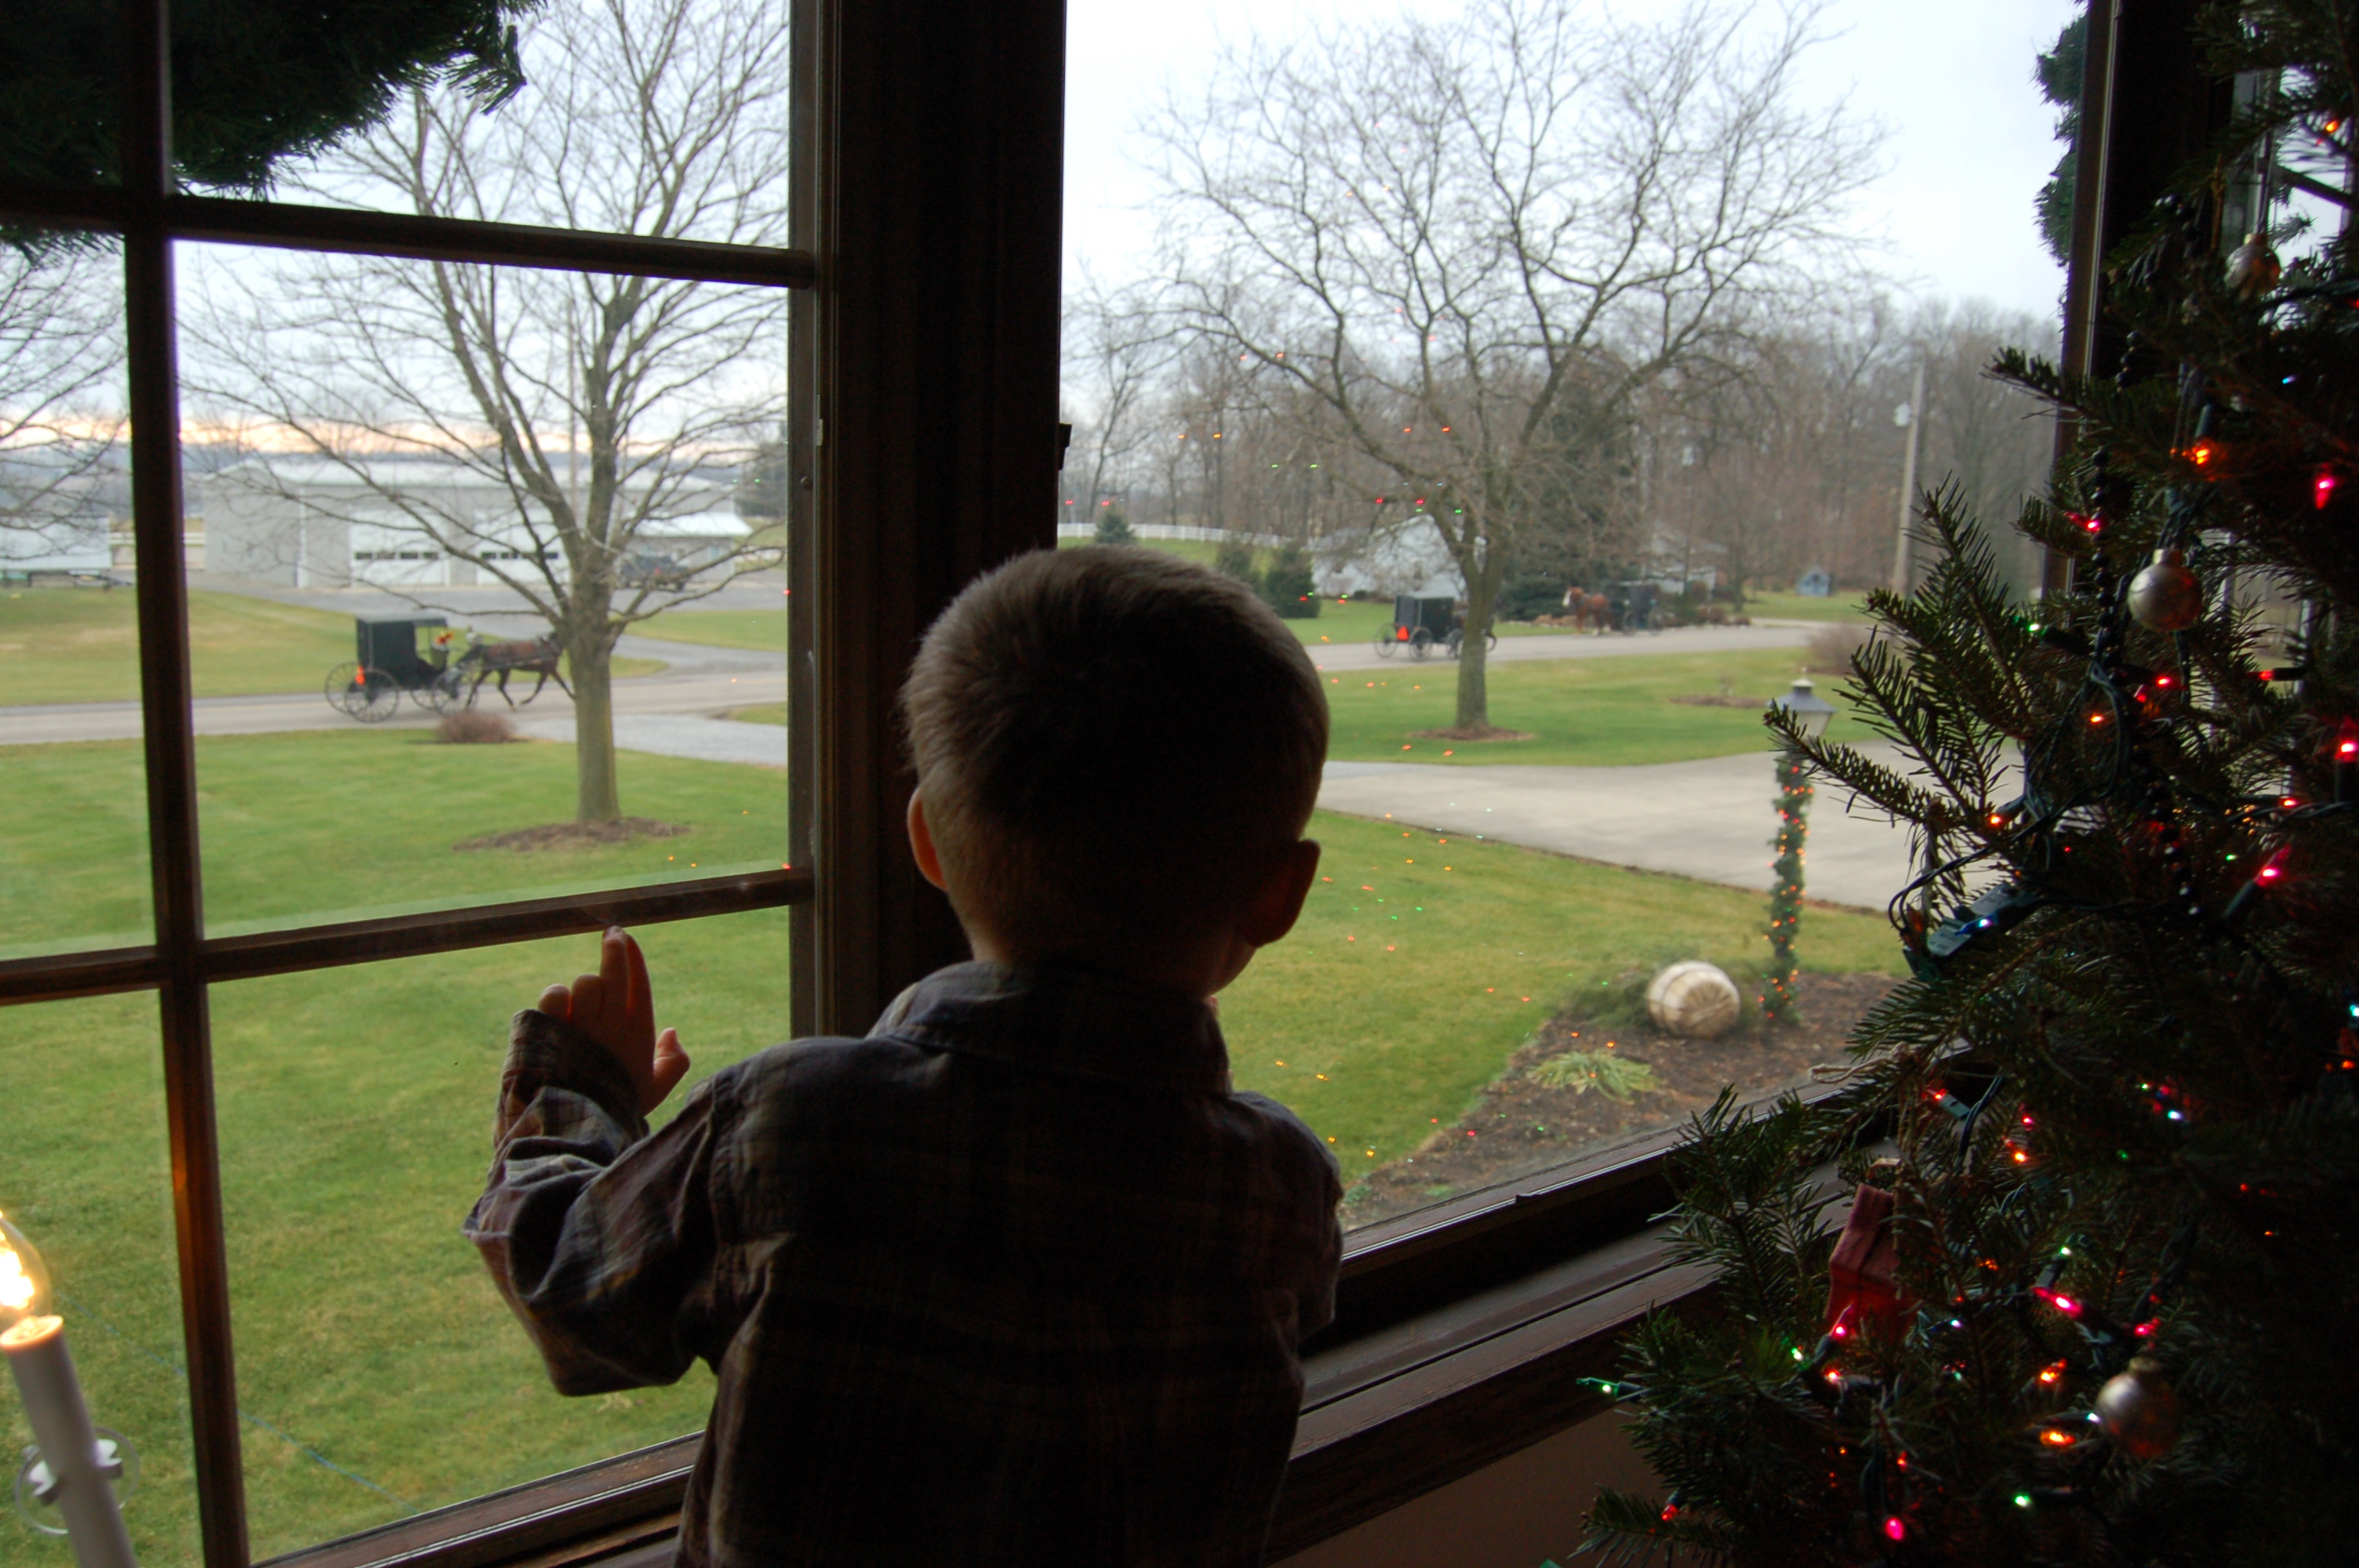 Watching for buggies on Christmas Day by Bruce Stambaugh